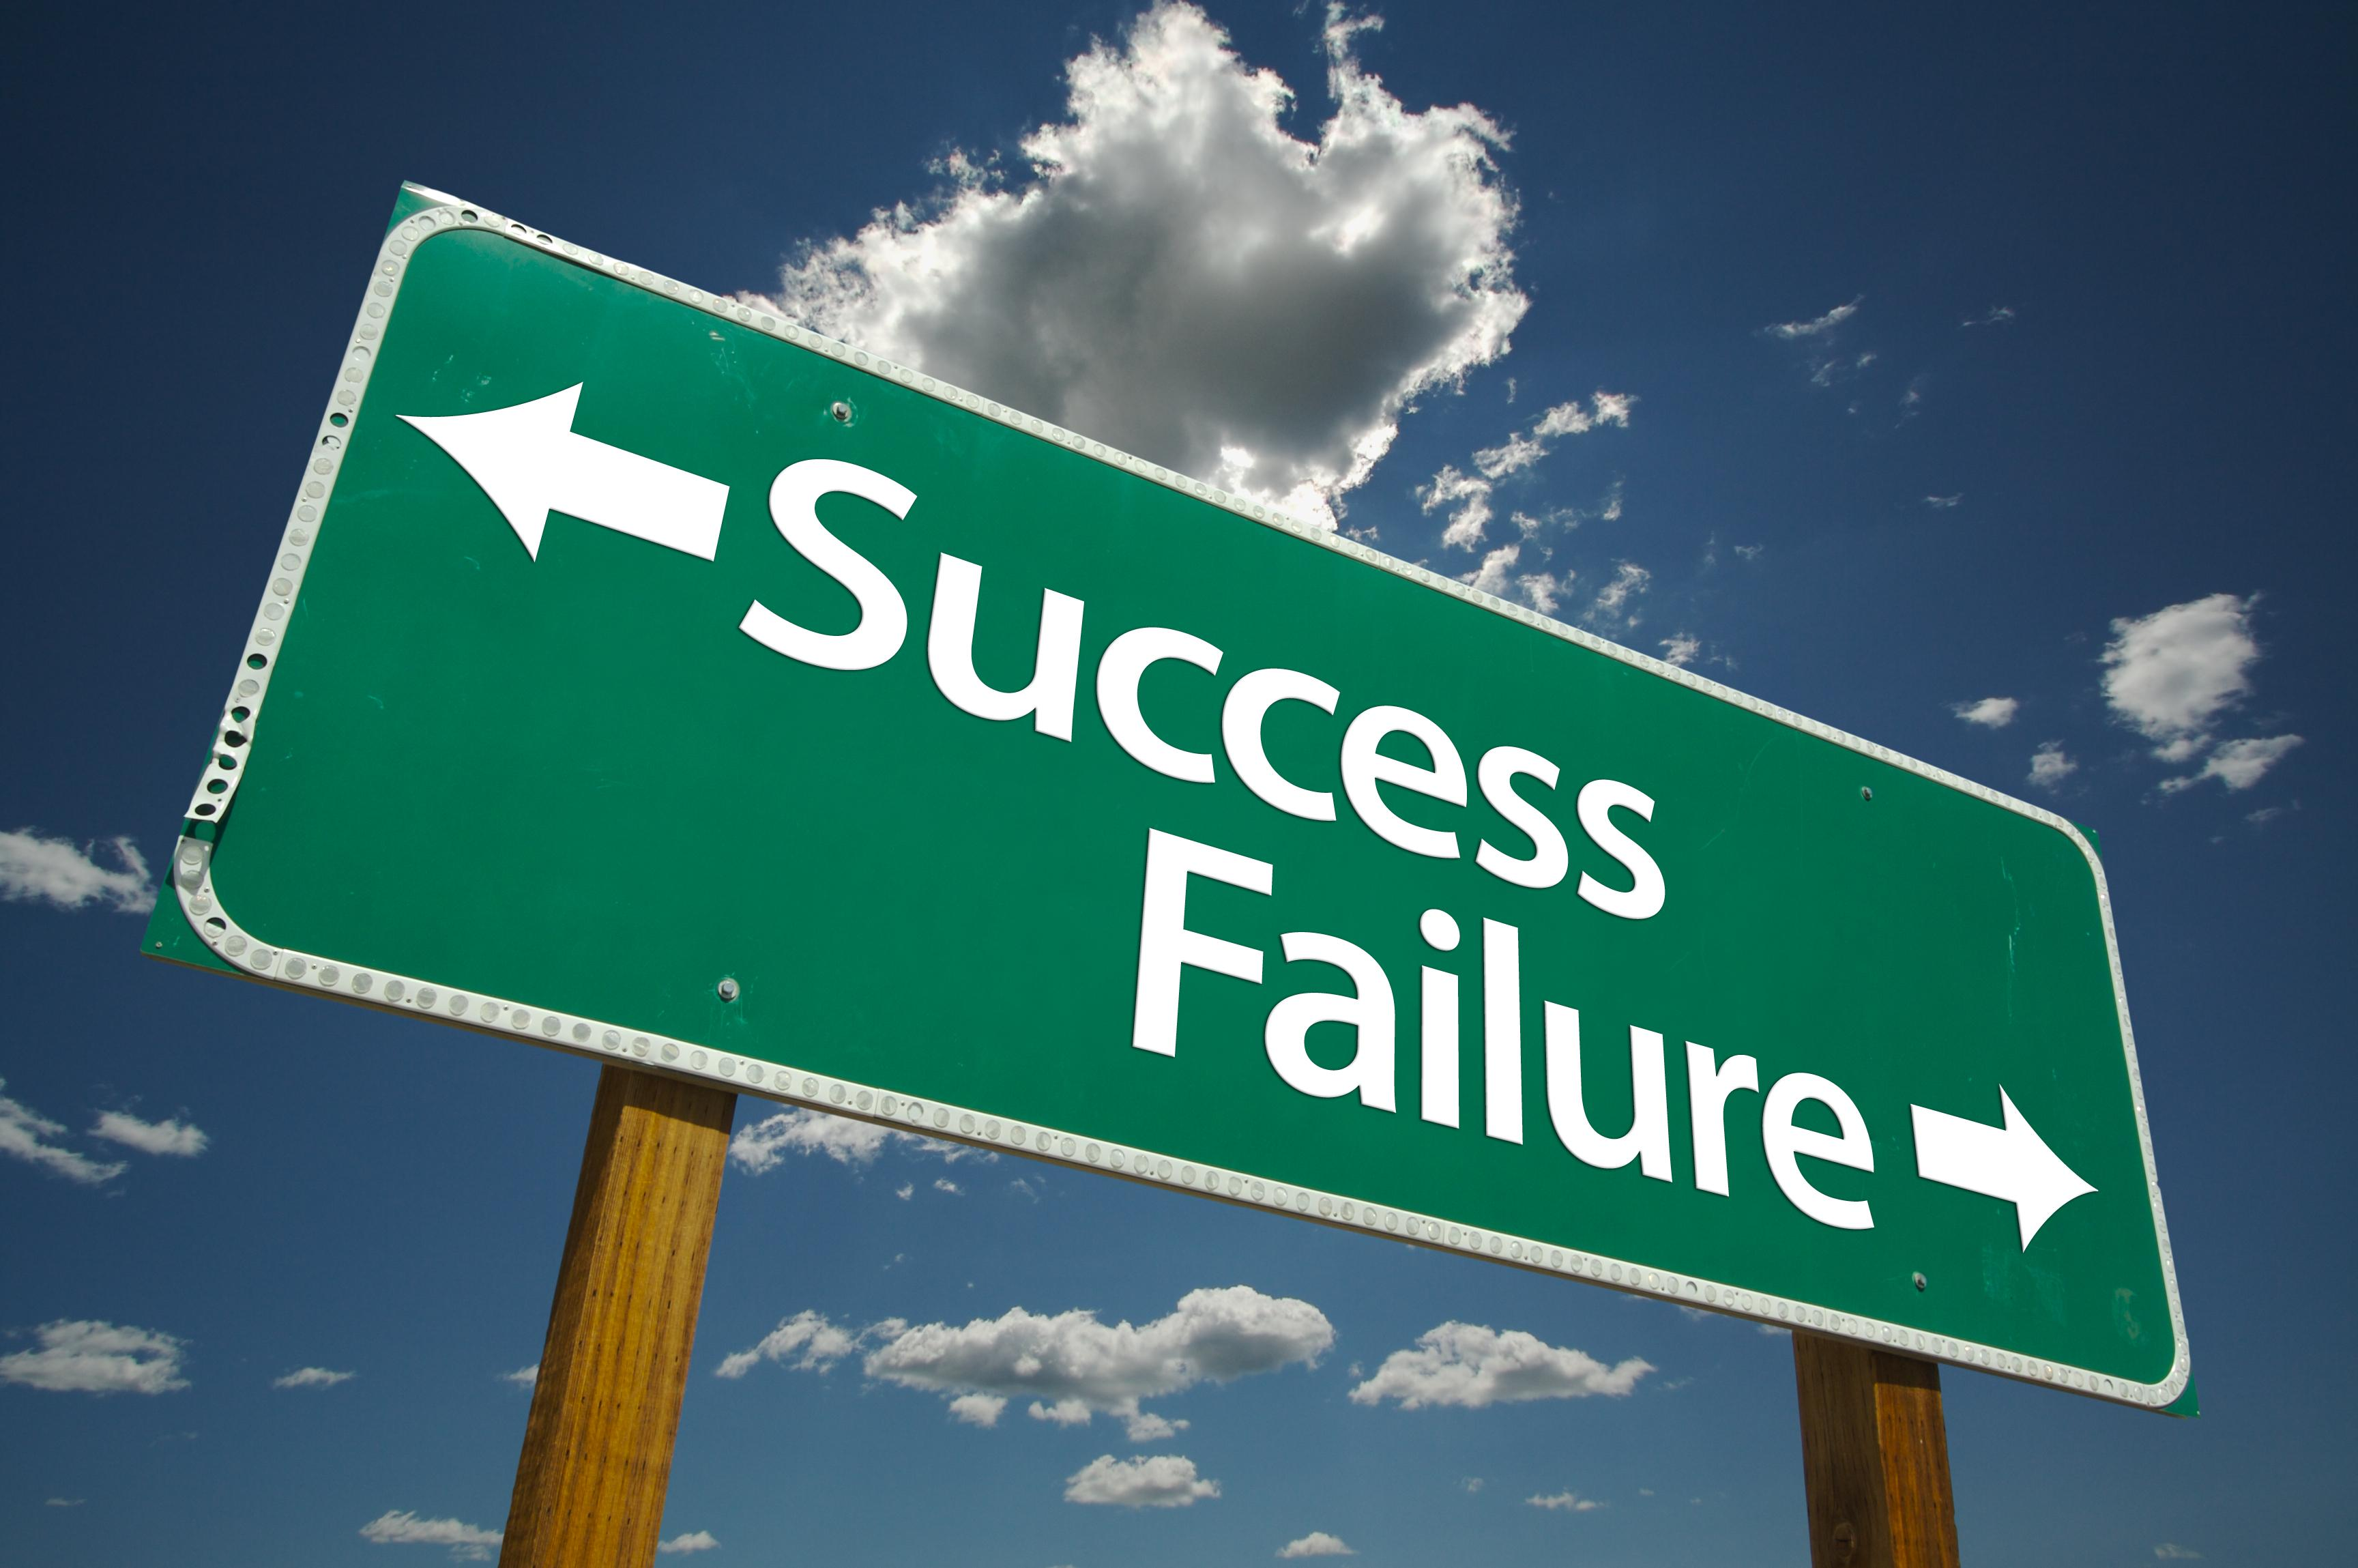 Insights into the Risk of Failure